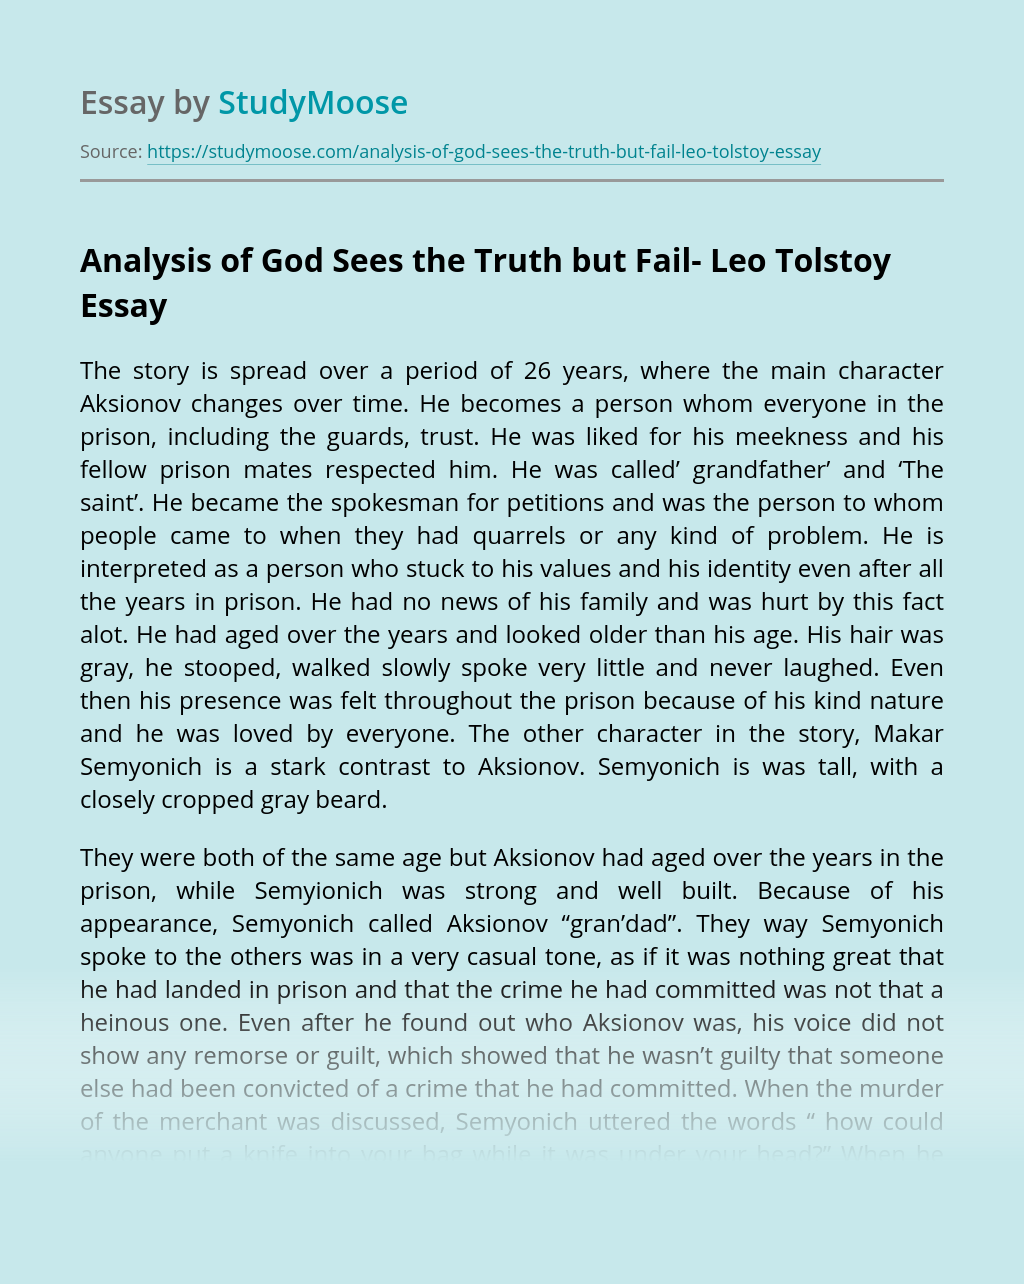 Analysis of God Sees the Truth but Fail- Leo Tolstoy